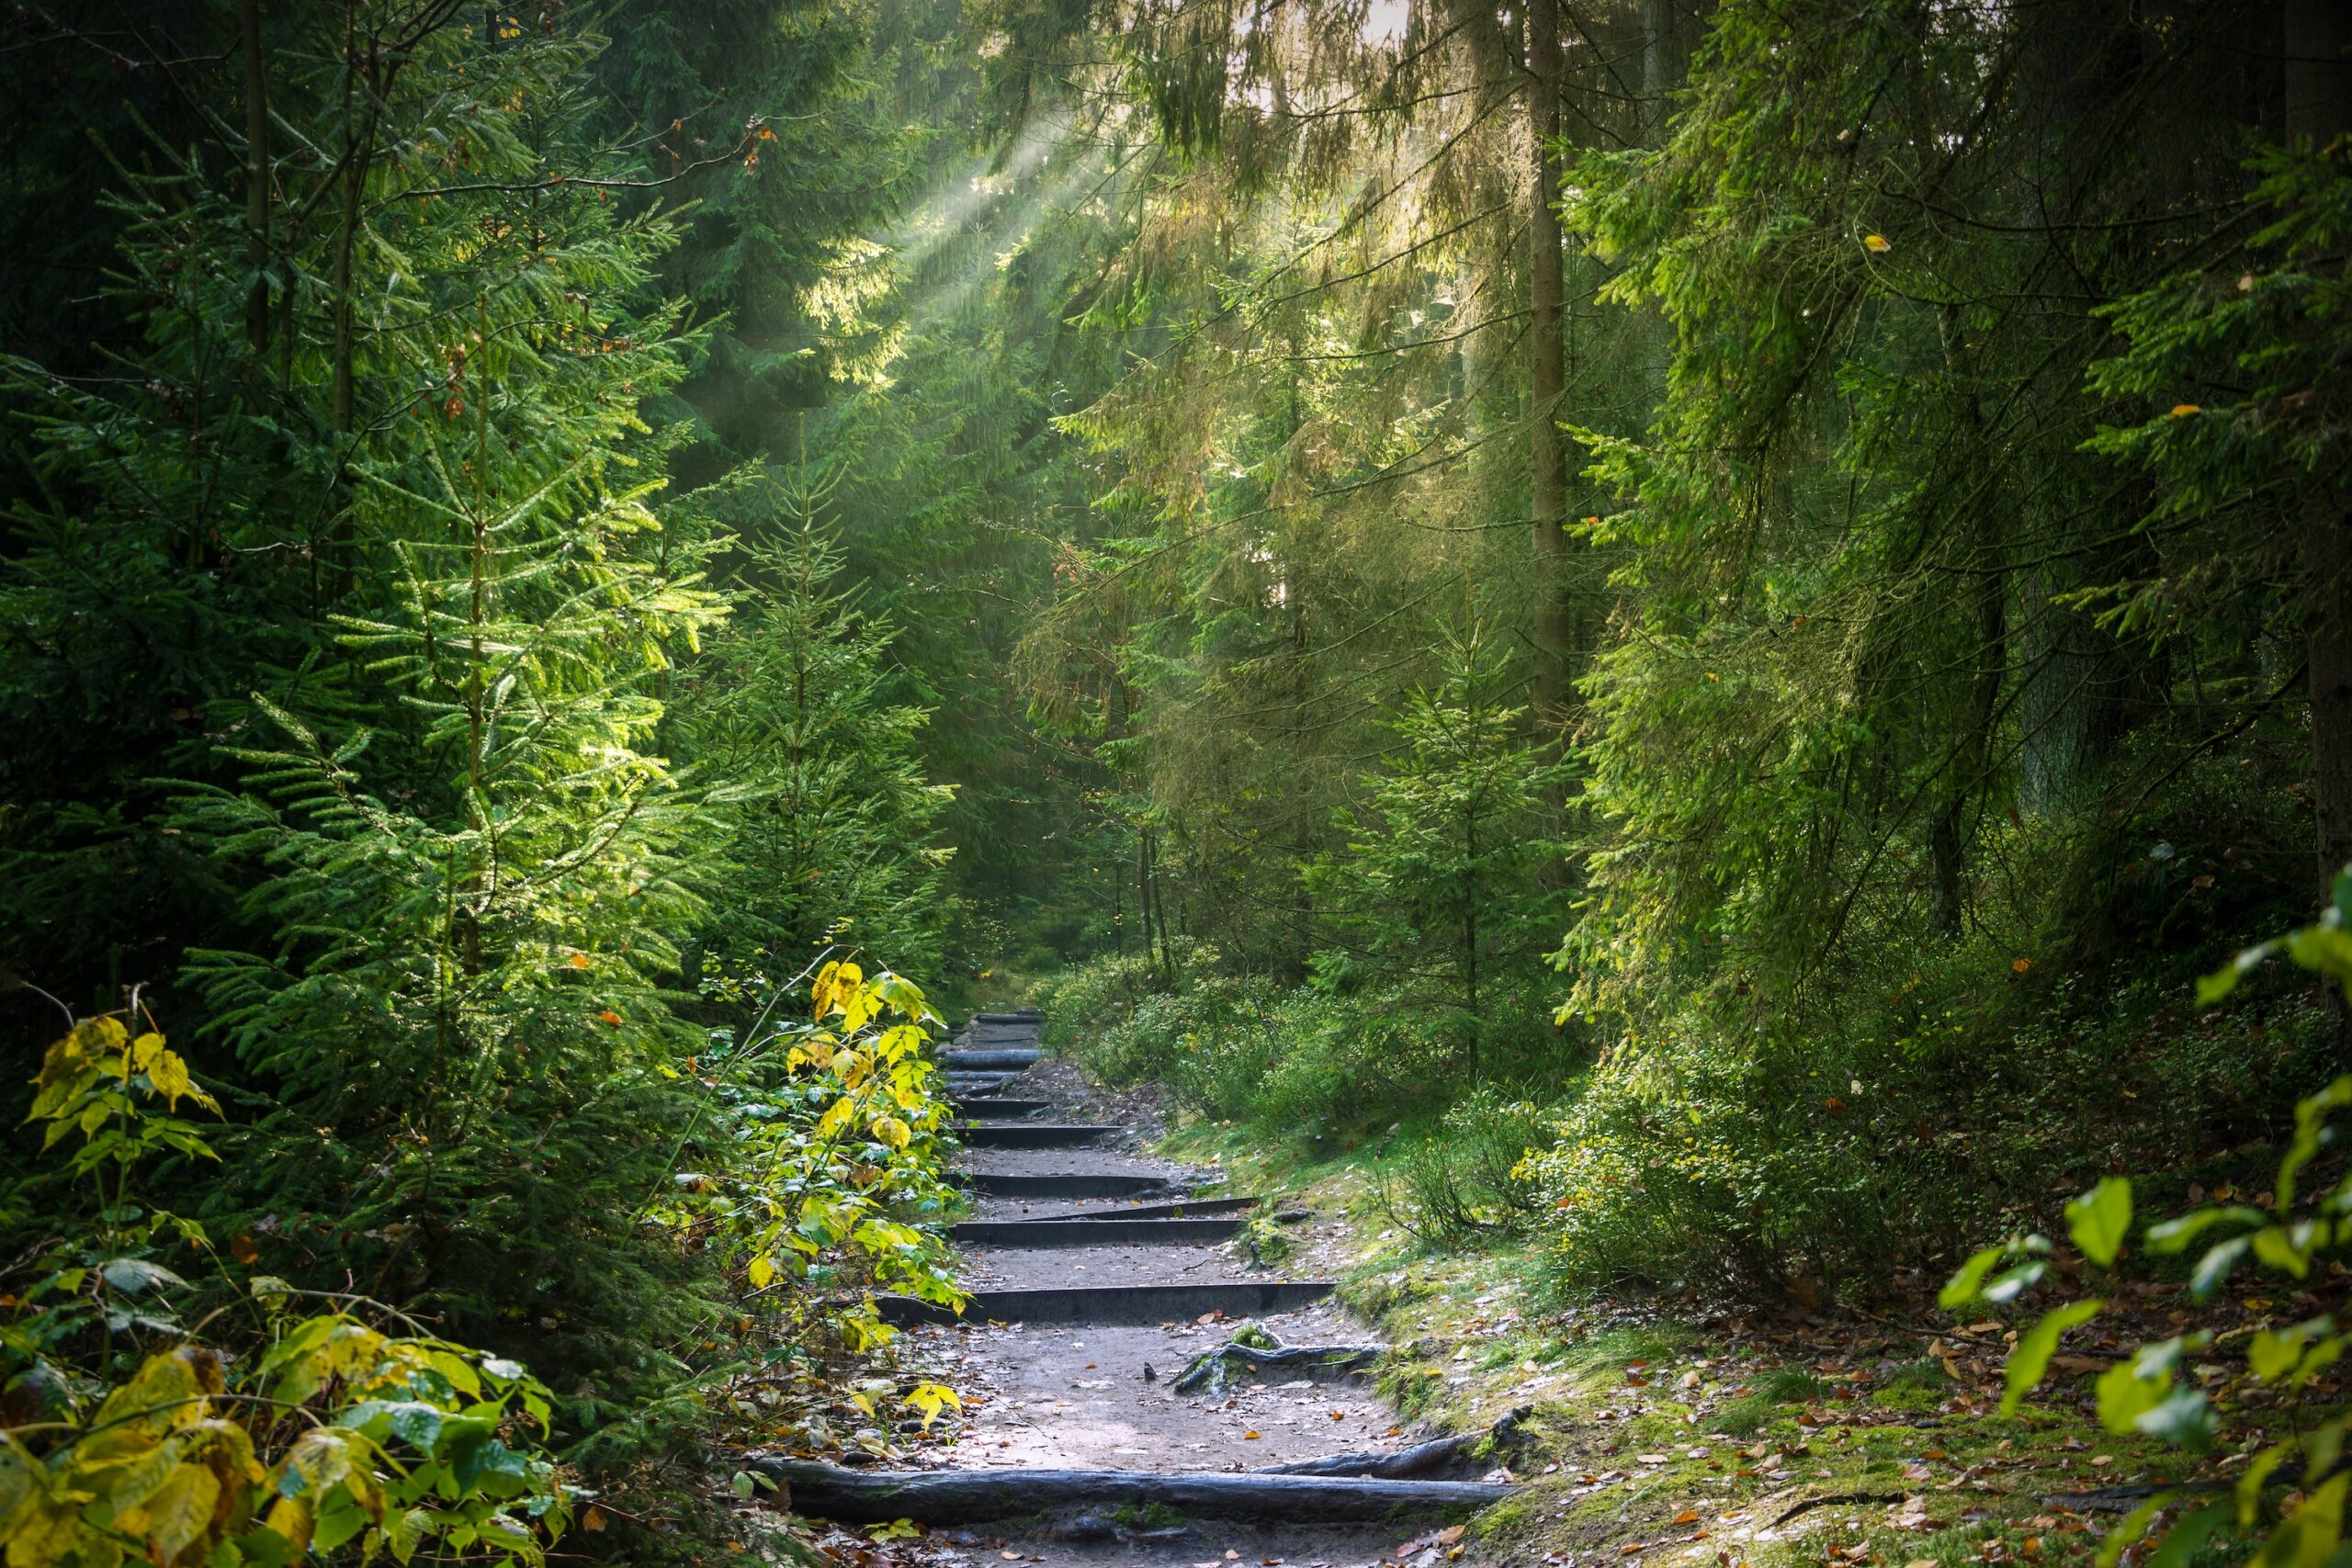 Forest path with wooden steps